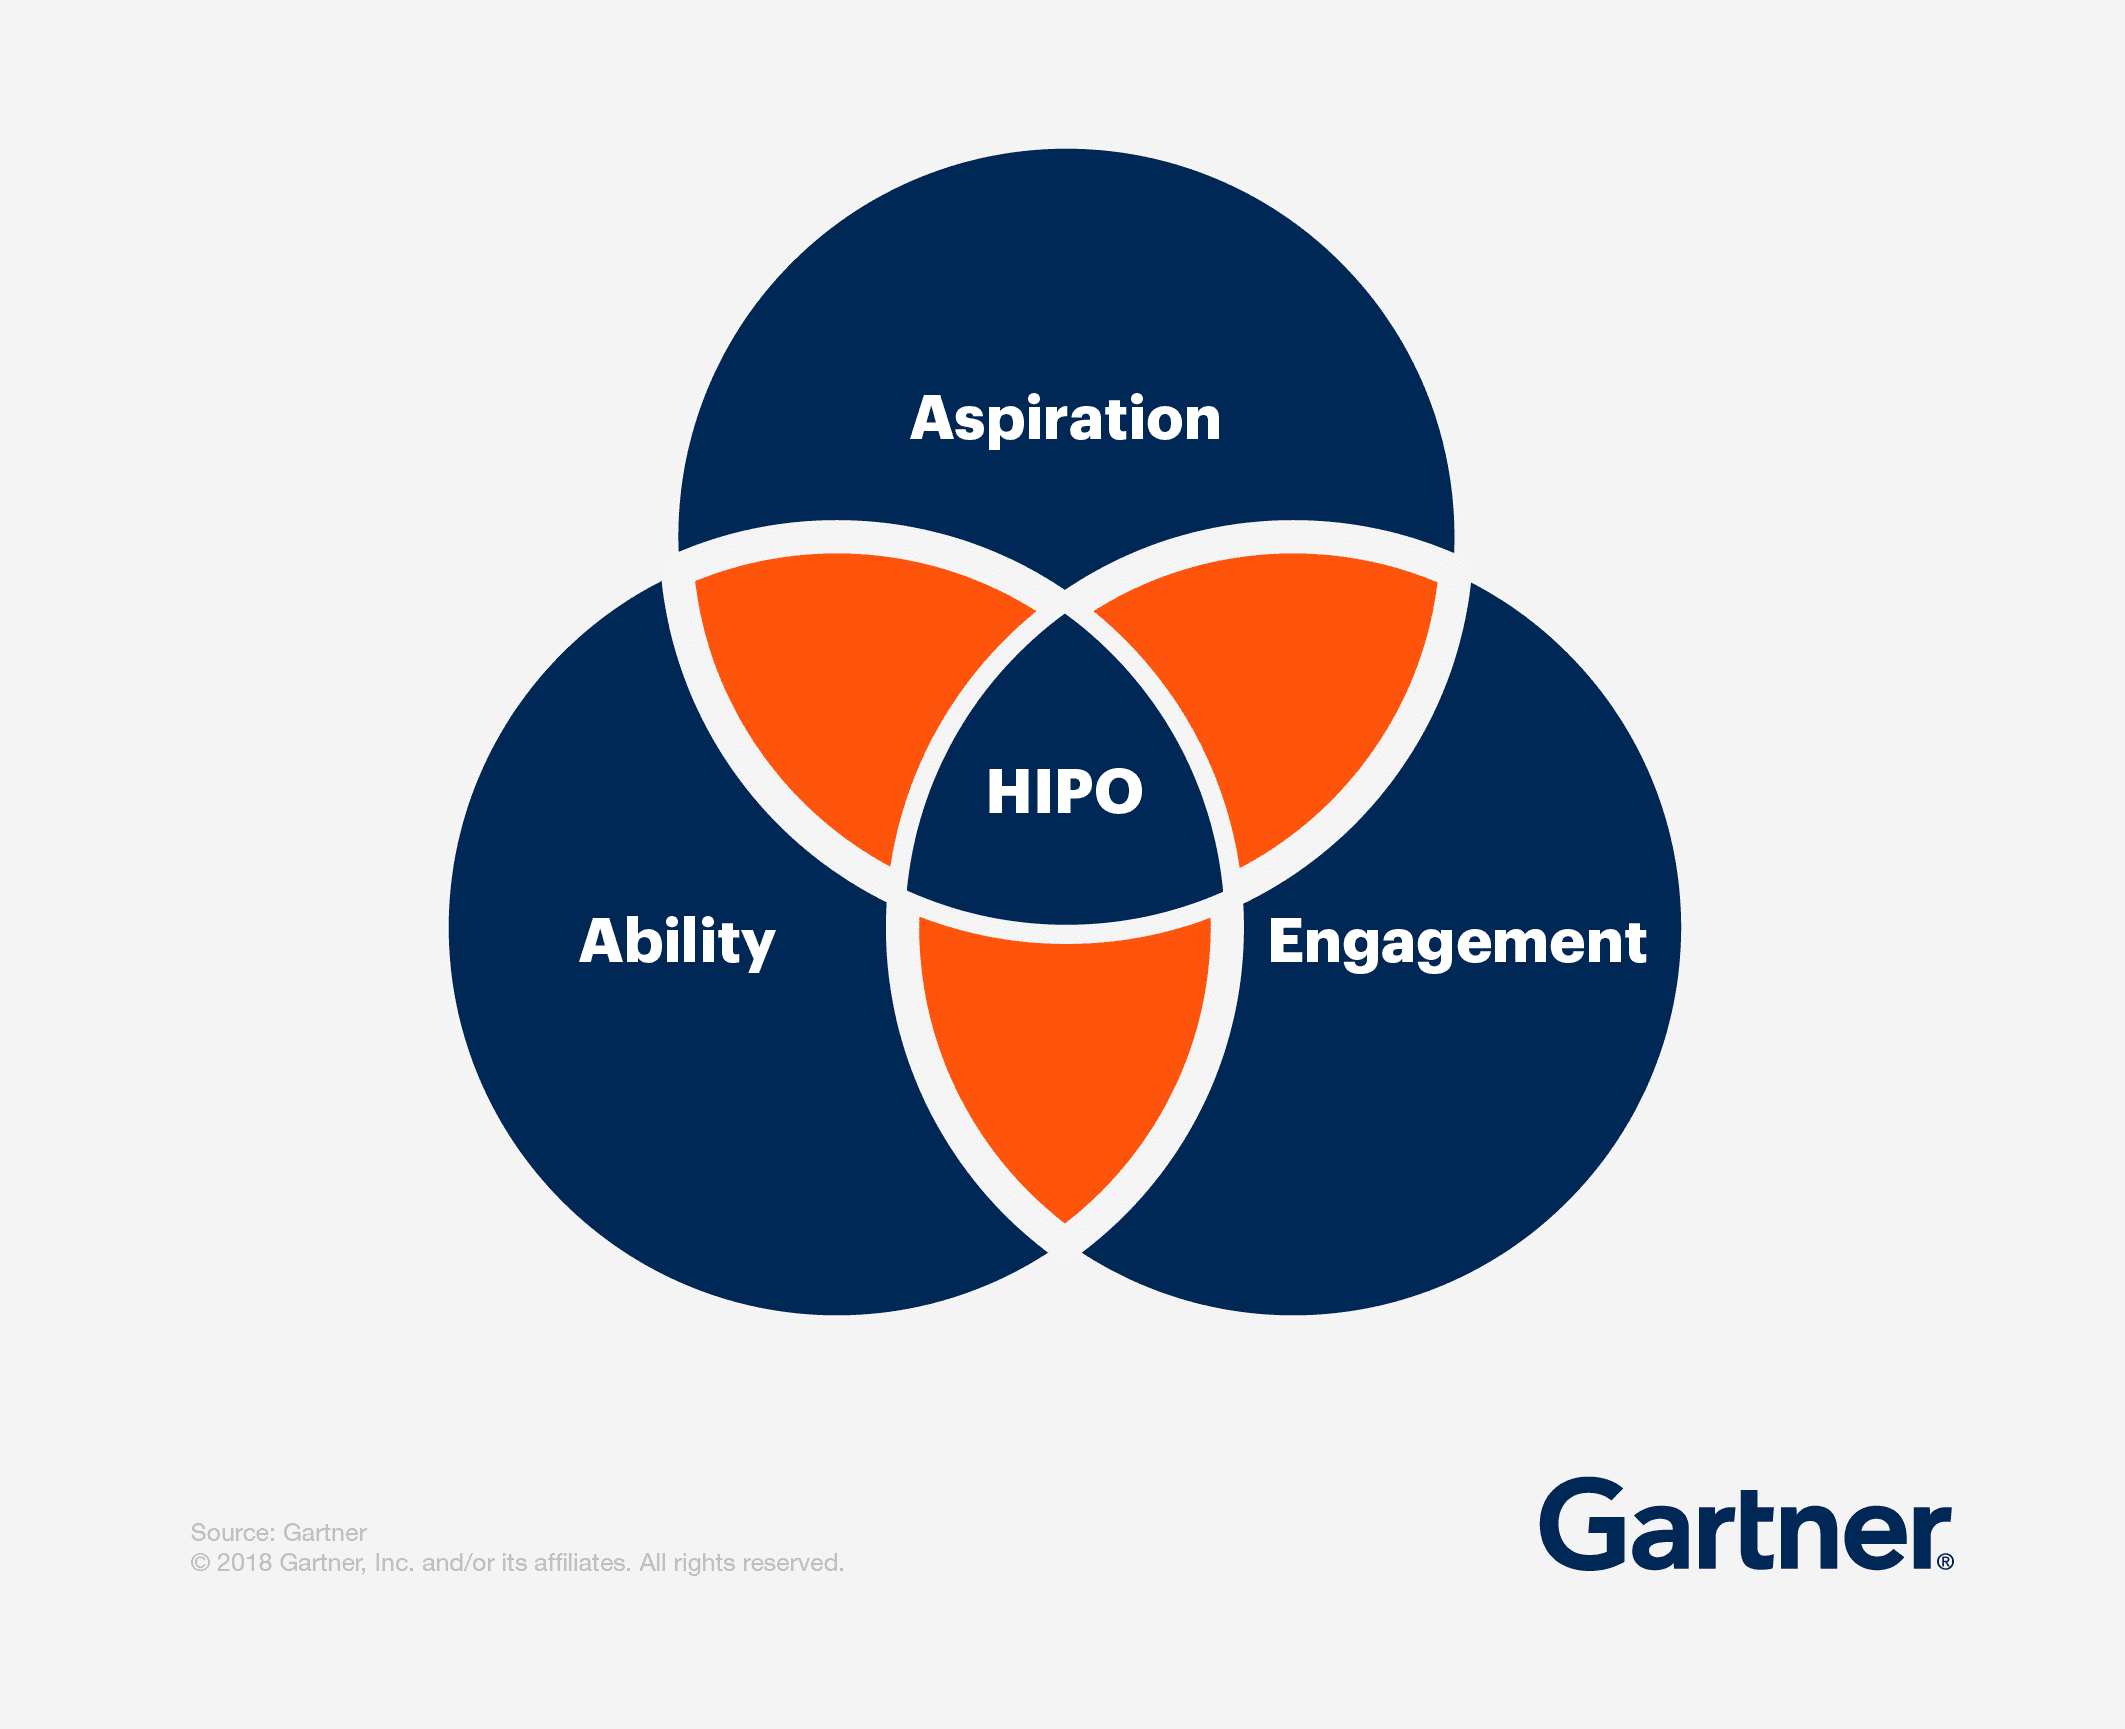 Ven Diagram showing Aspiration, Ability, and Engagement all contributing to HIPO.